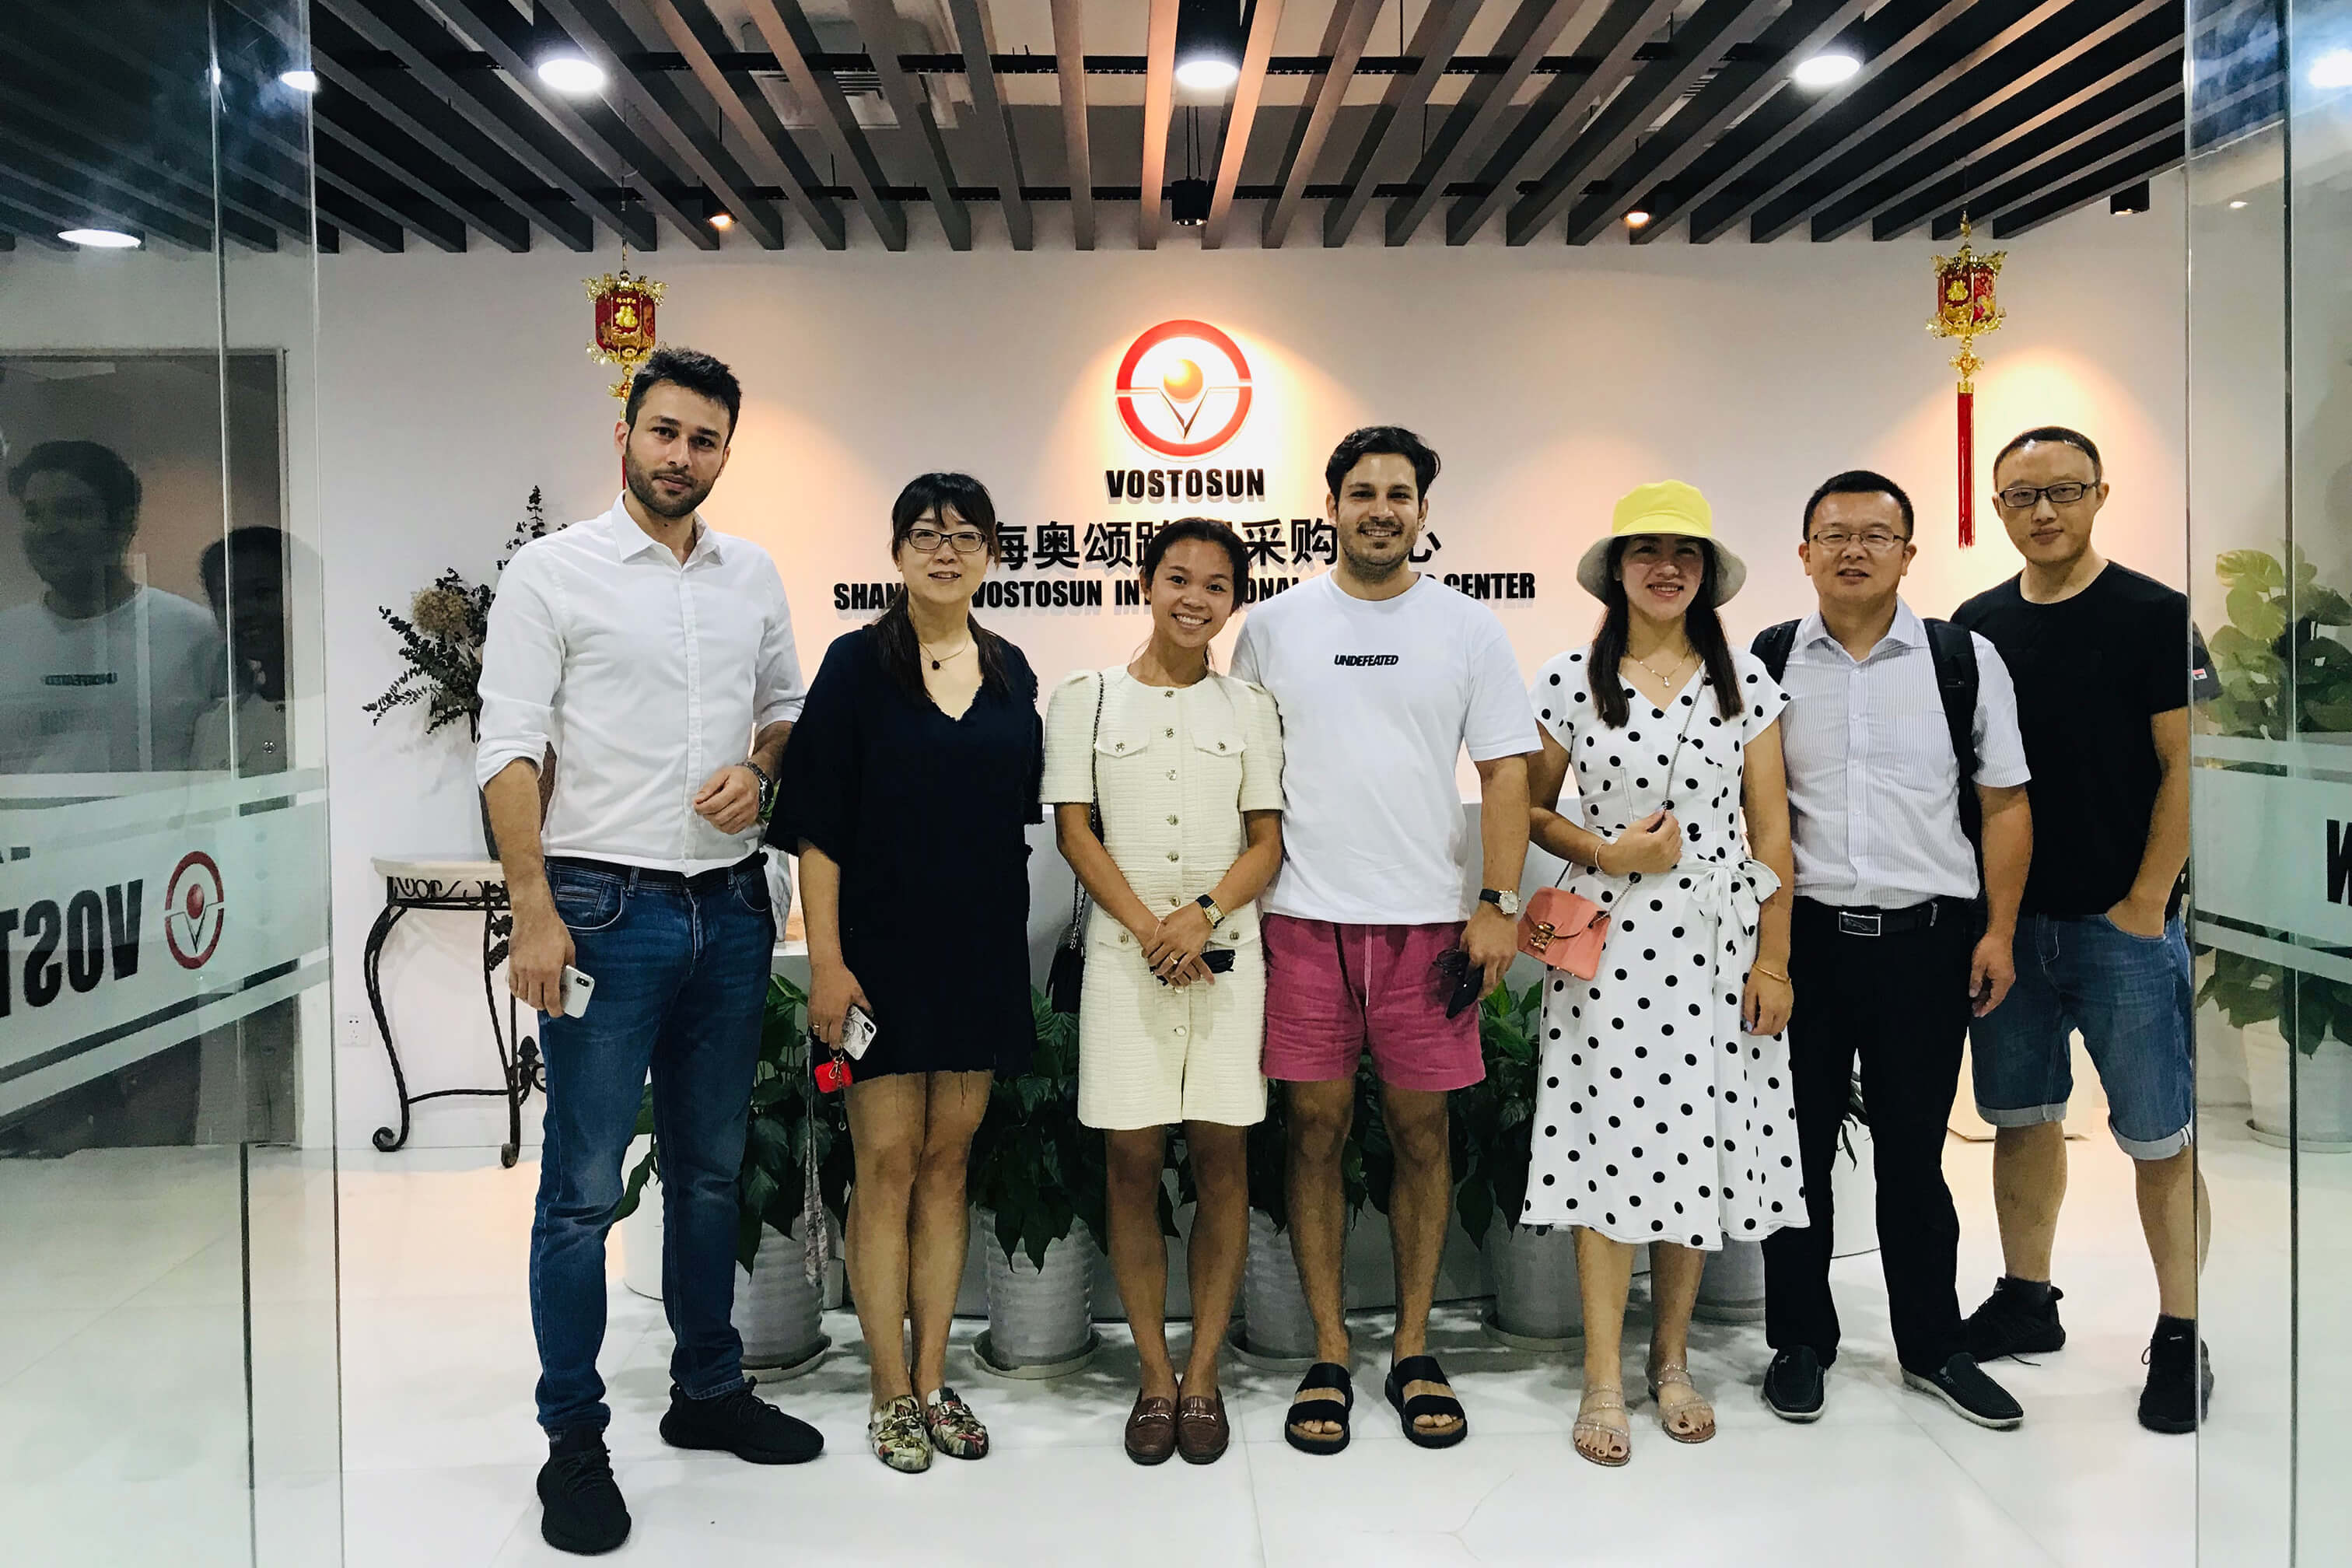 July 31, 2019, customers from Iran visited our company to discuss cooperation intentions.